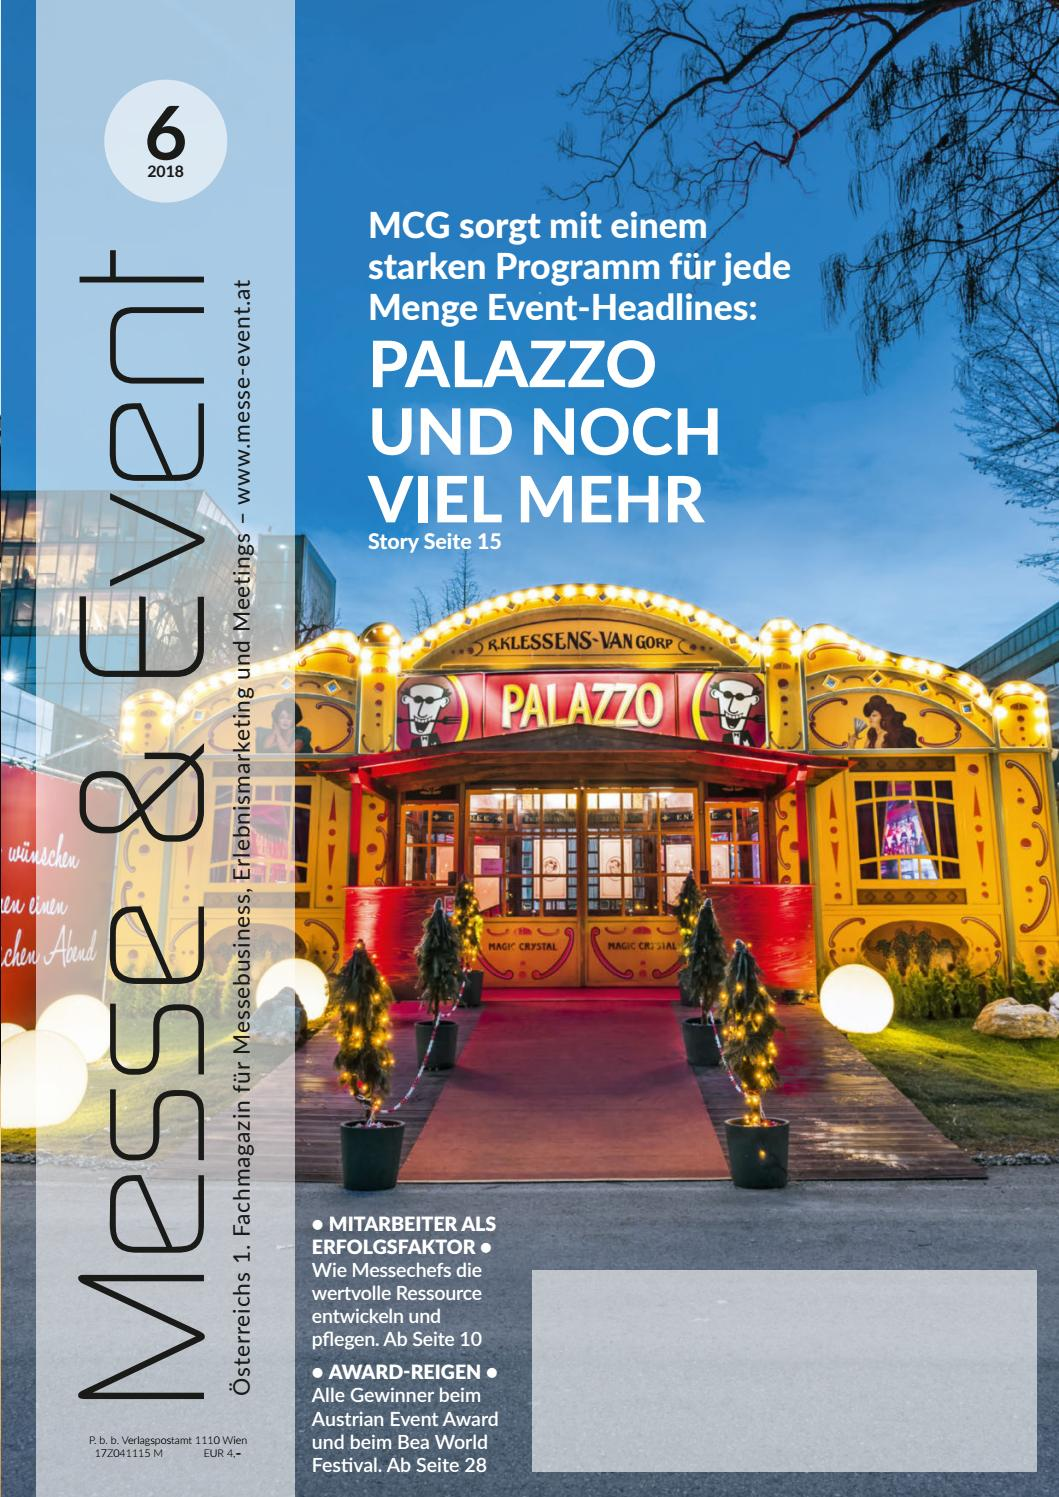 Messe & Event 62018 by Messe & Event Magazin issuu